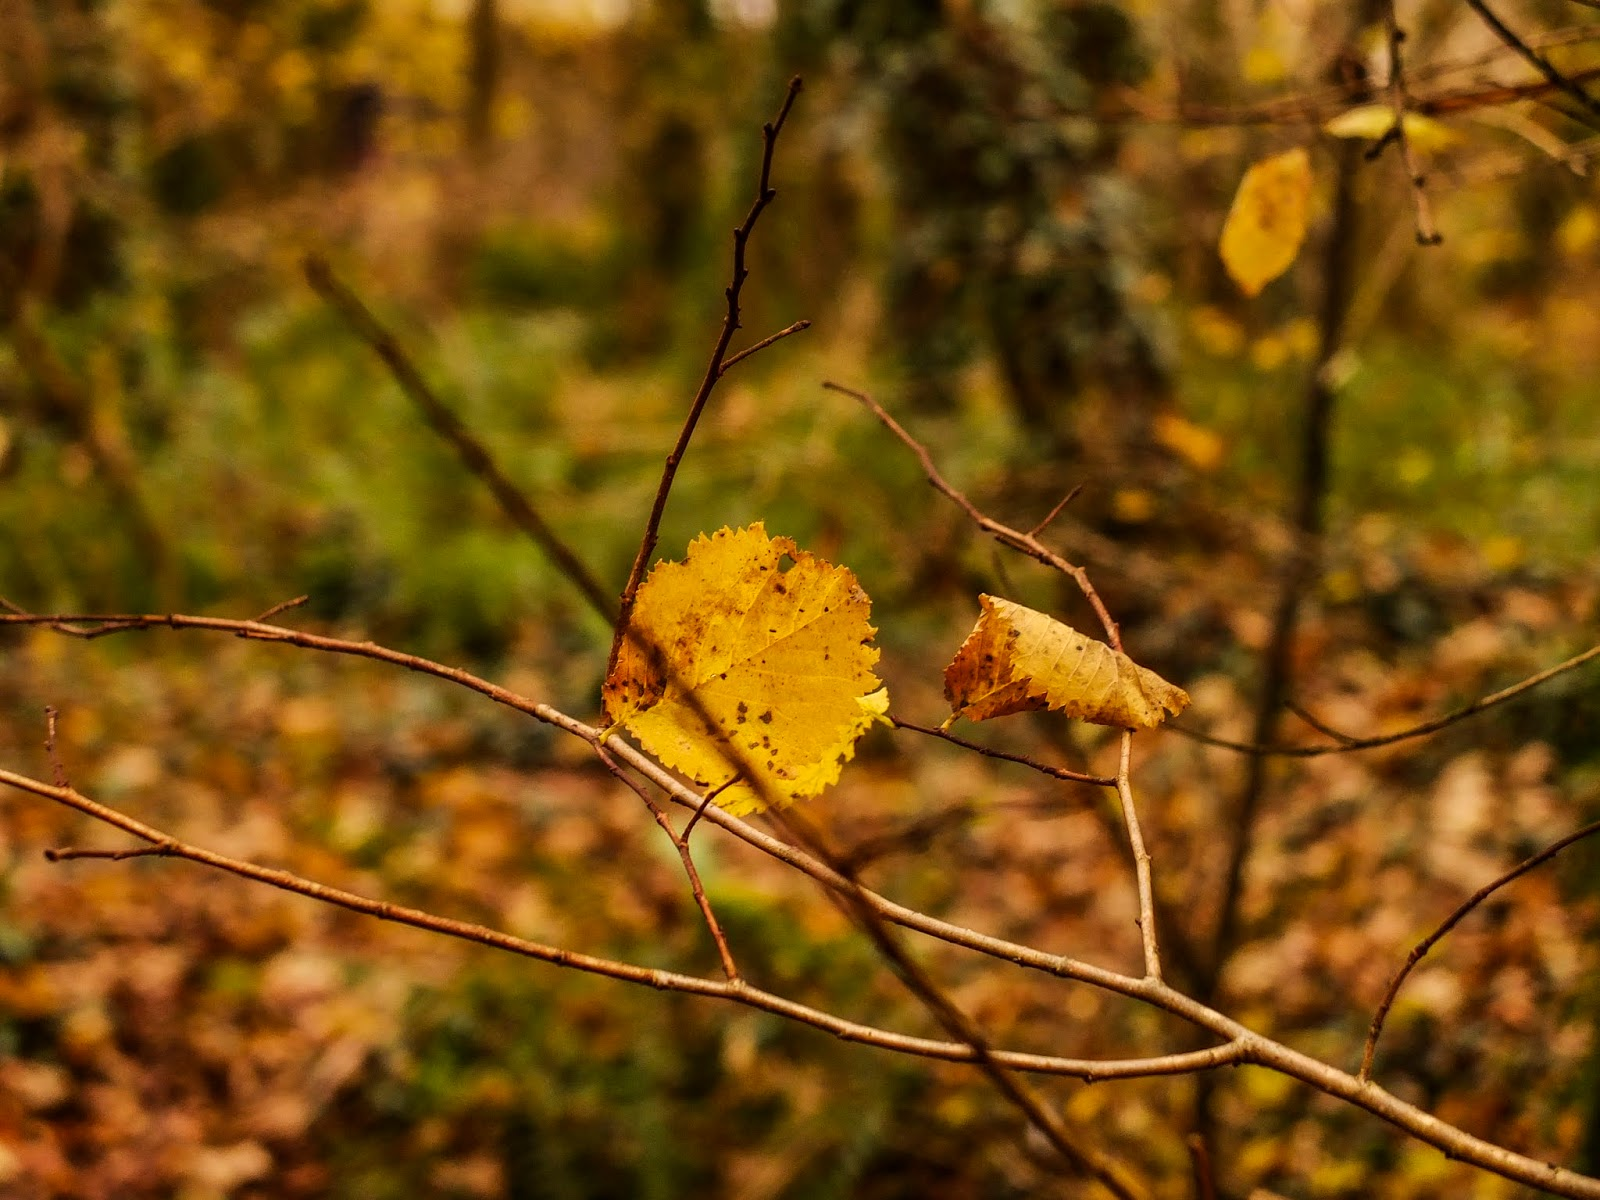 A round yellow leaf hanging off a bare tree branch in the woods.